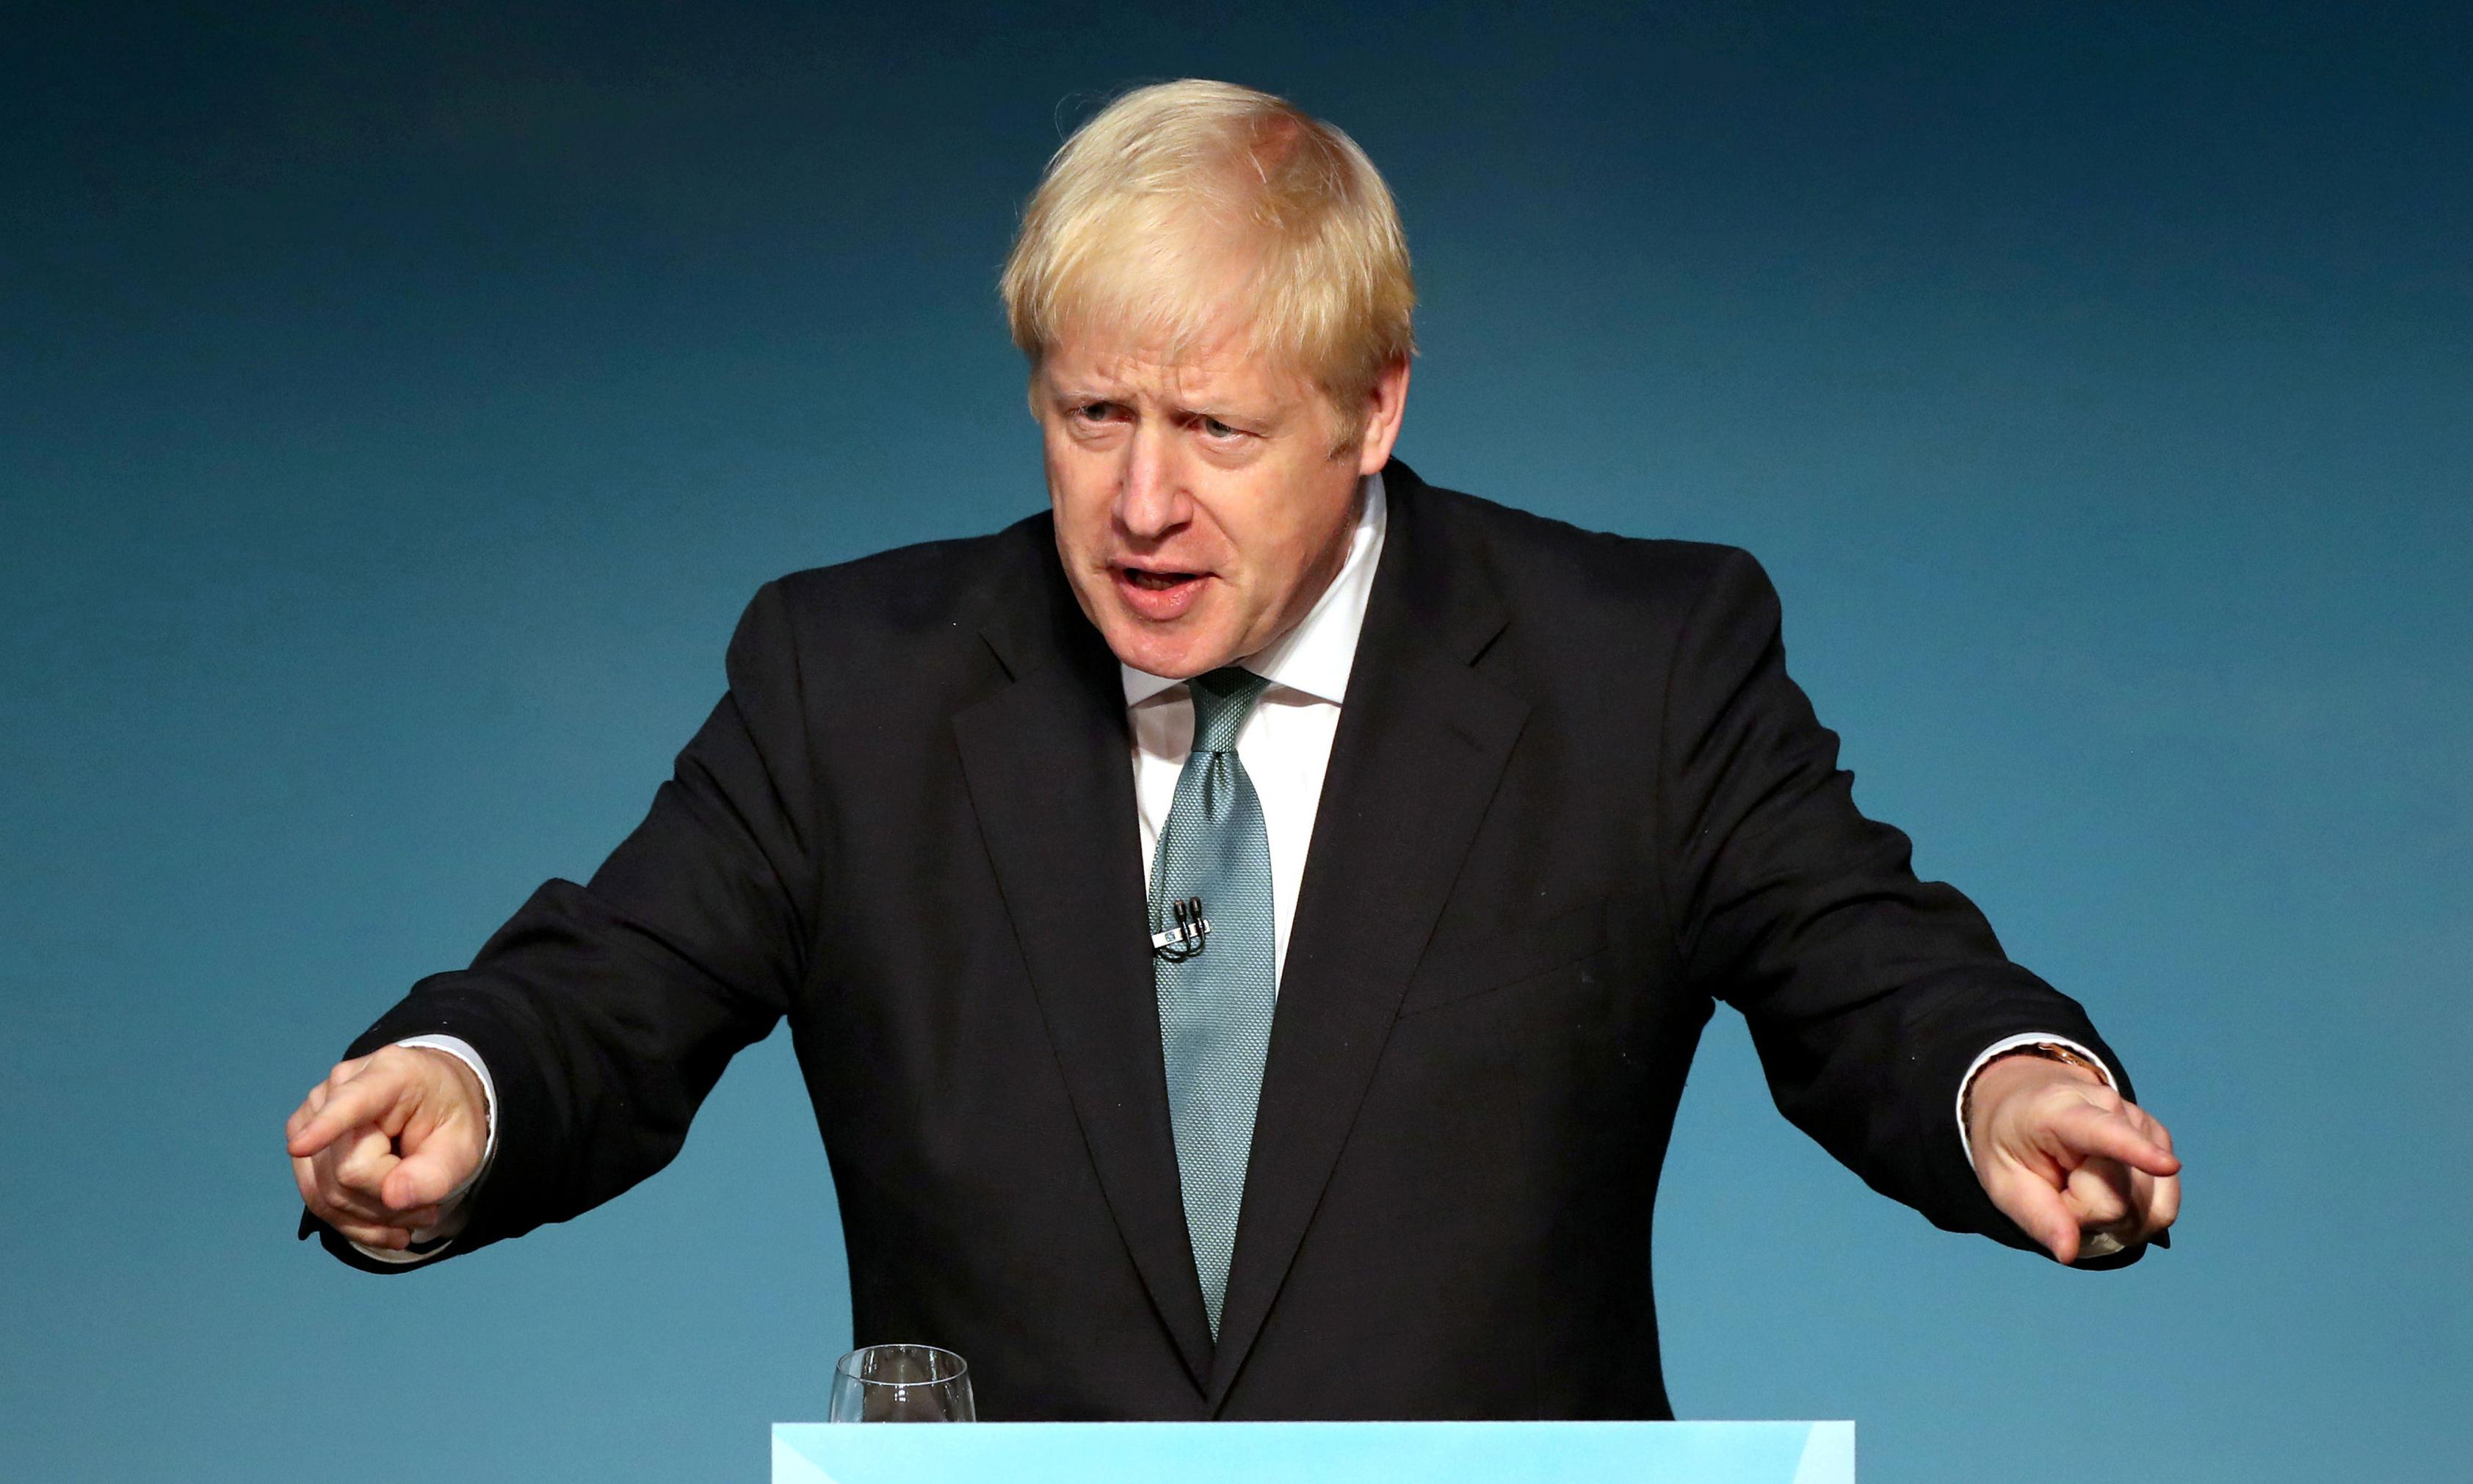 Women more likely than men to view Boris Johnson as dishonest – Guardian quiz